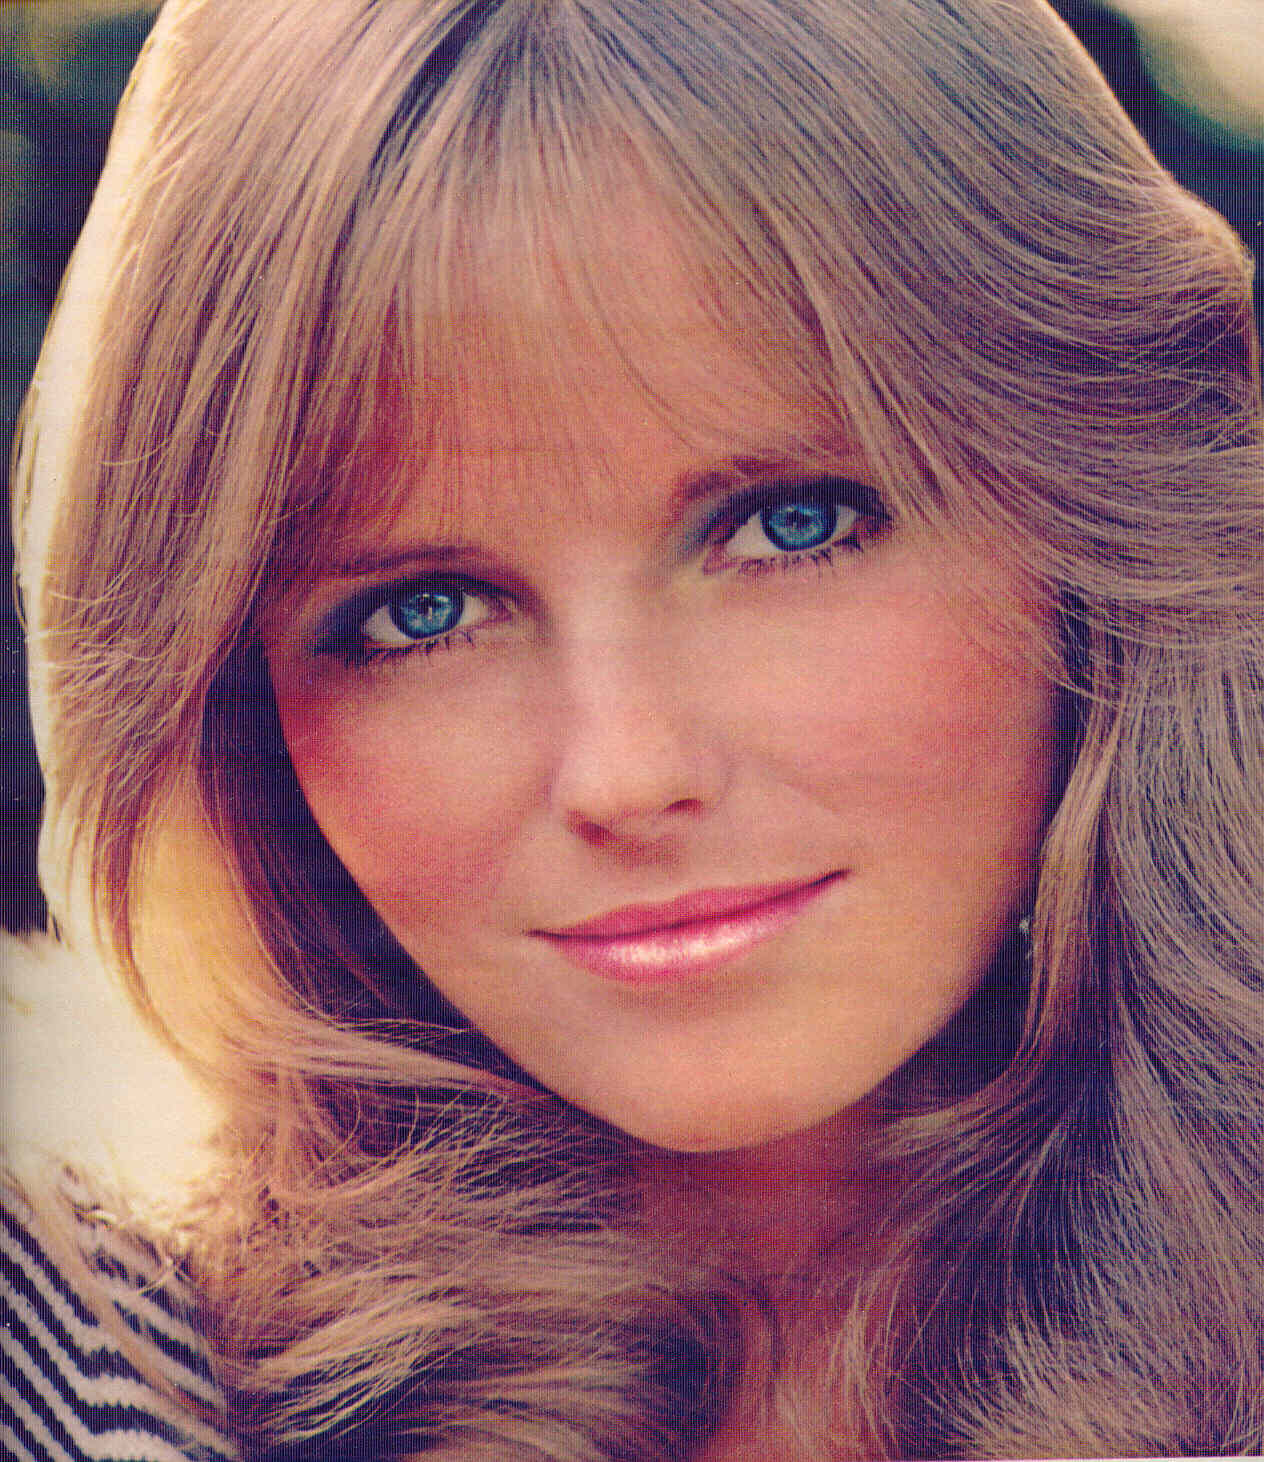 gold country girls: Models From The 70's - Cheryl Tiegs